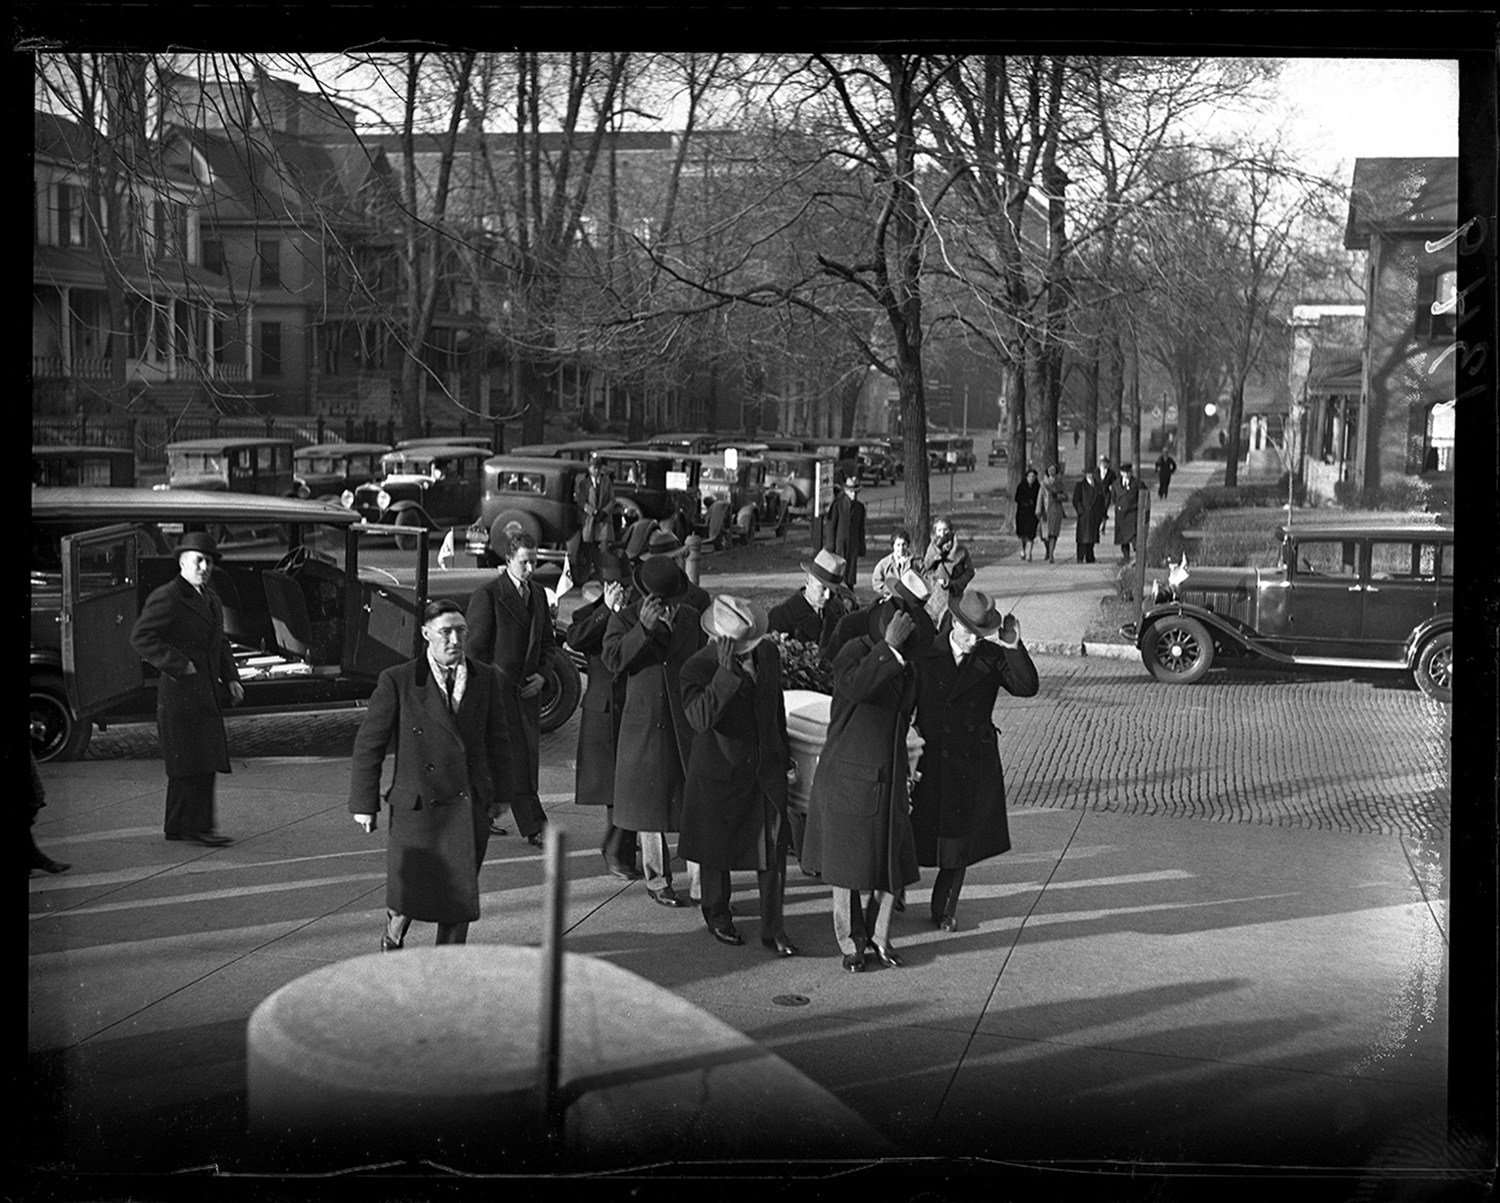 Funeral for poet Vachel Lindsay at First Christian Church, Sixth and Cook streets, Dec. 8, 1931. File/The State Journal-Register